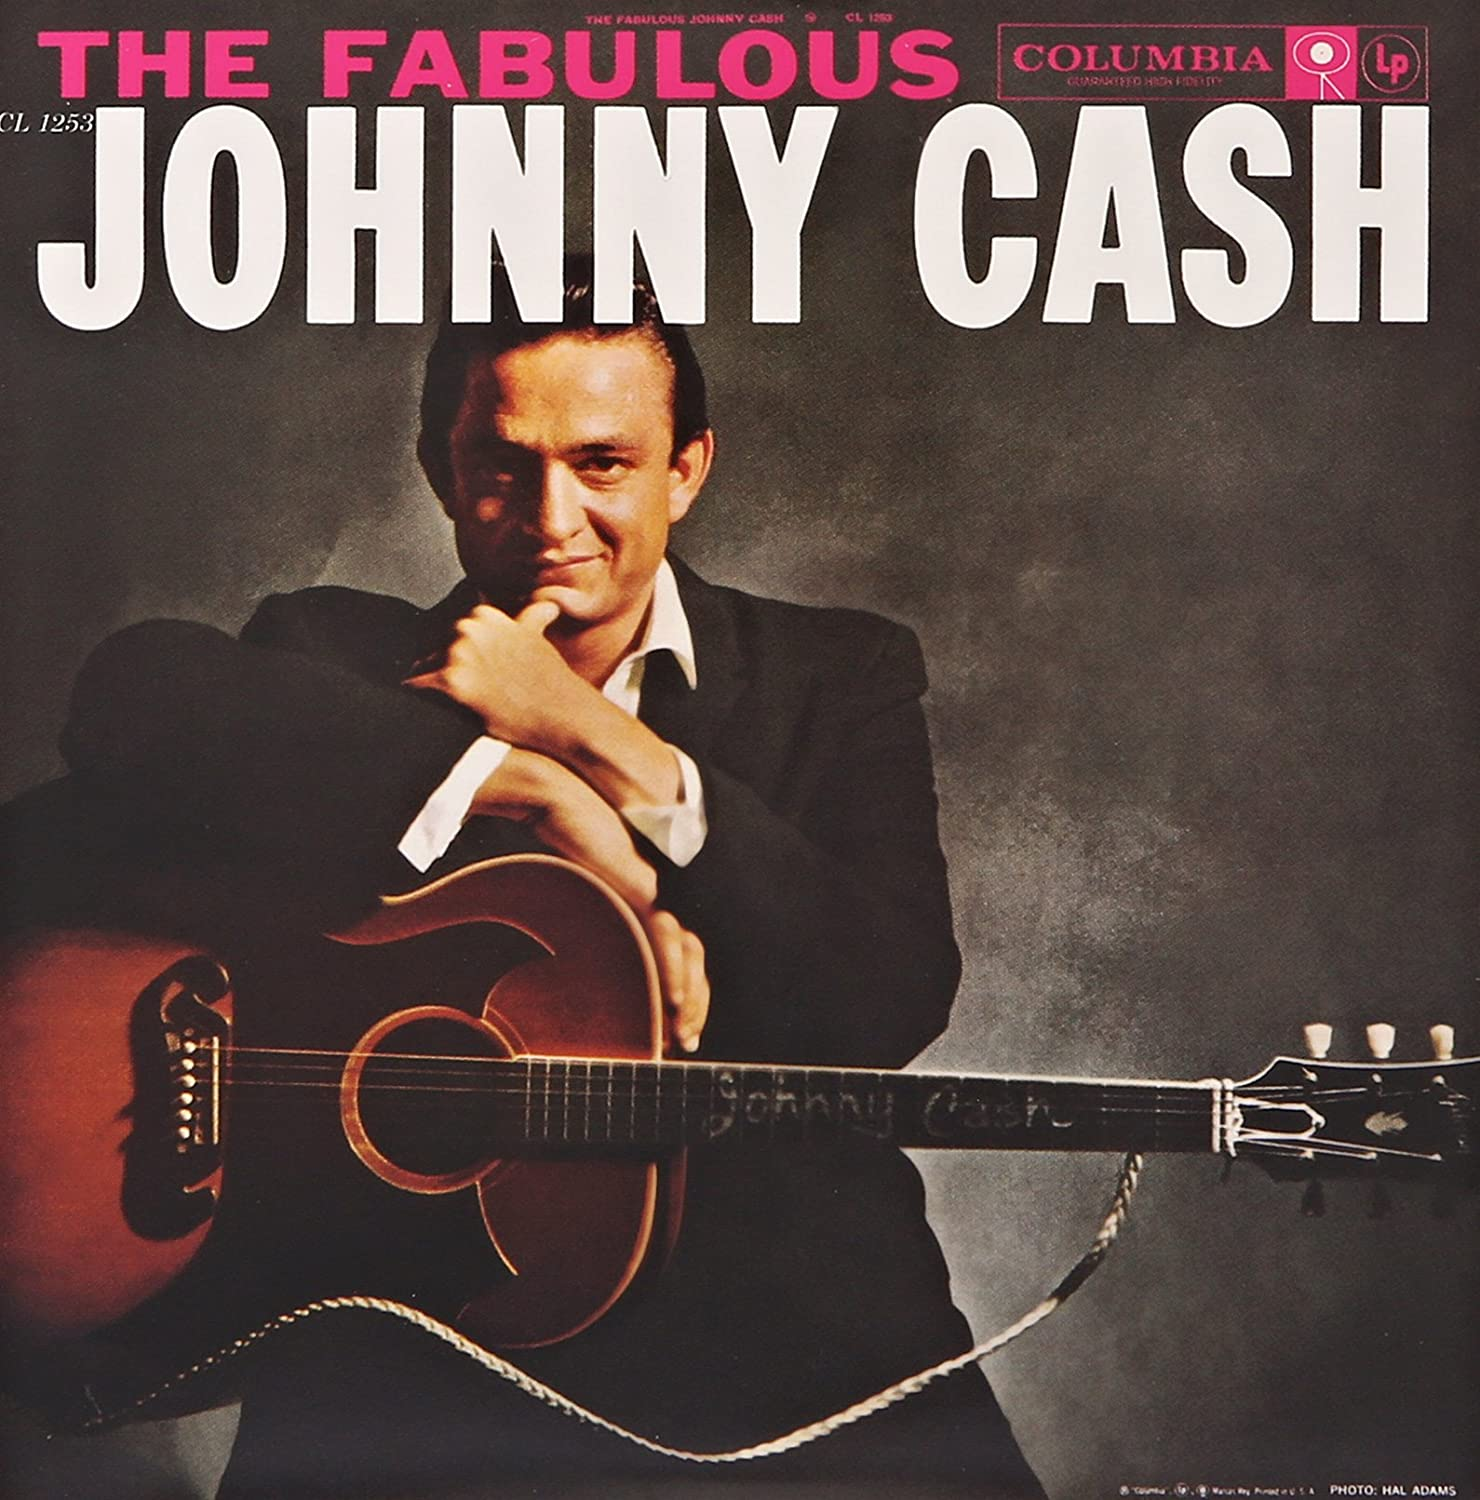 Johnny Cash - The Complete Columbia Album Collection - Amazon.com Music